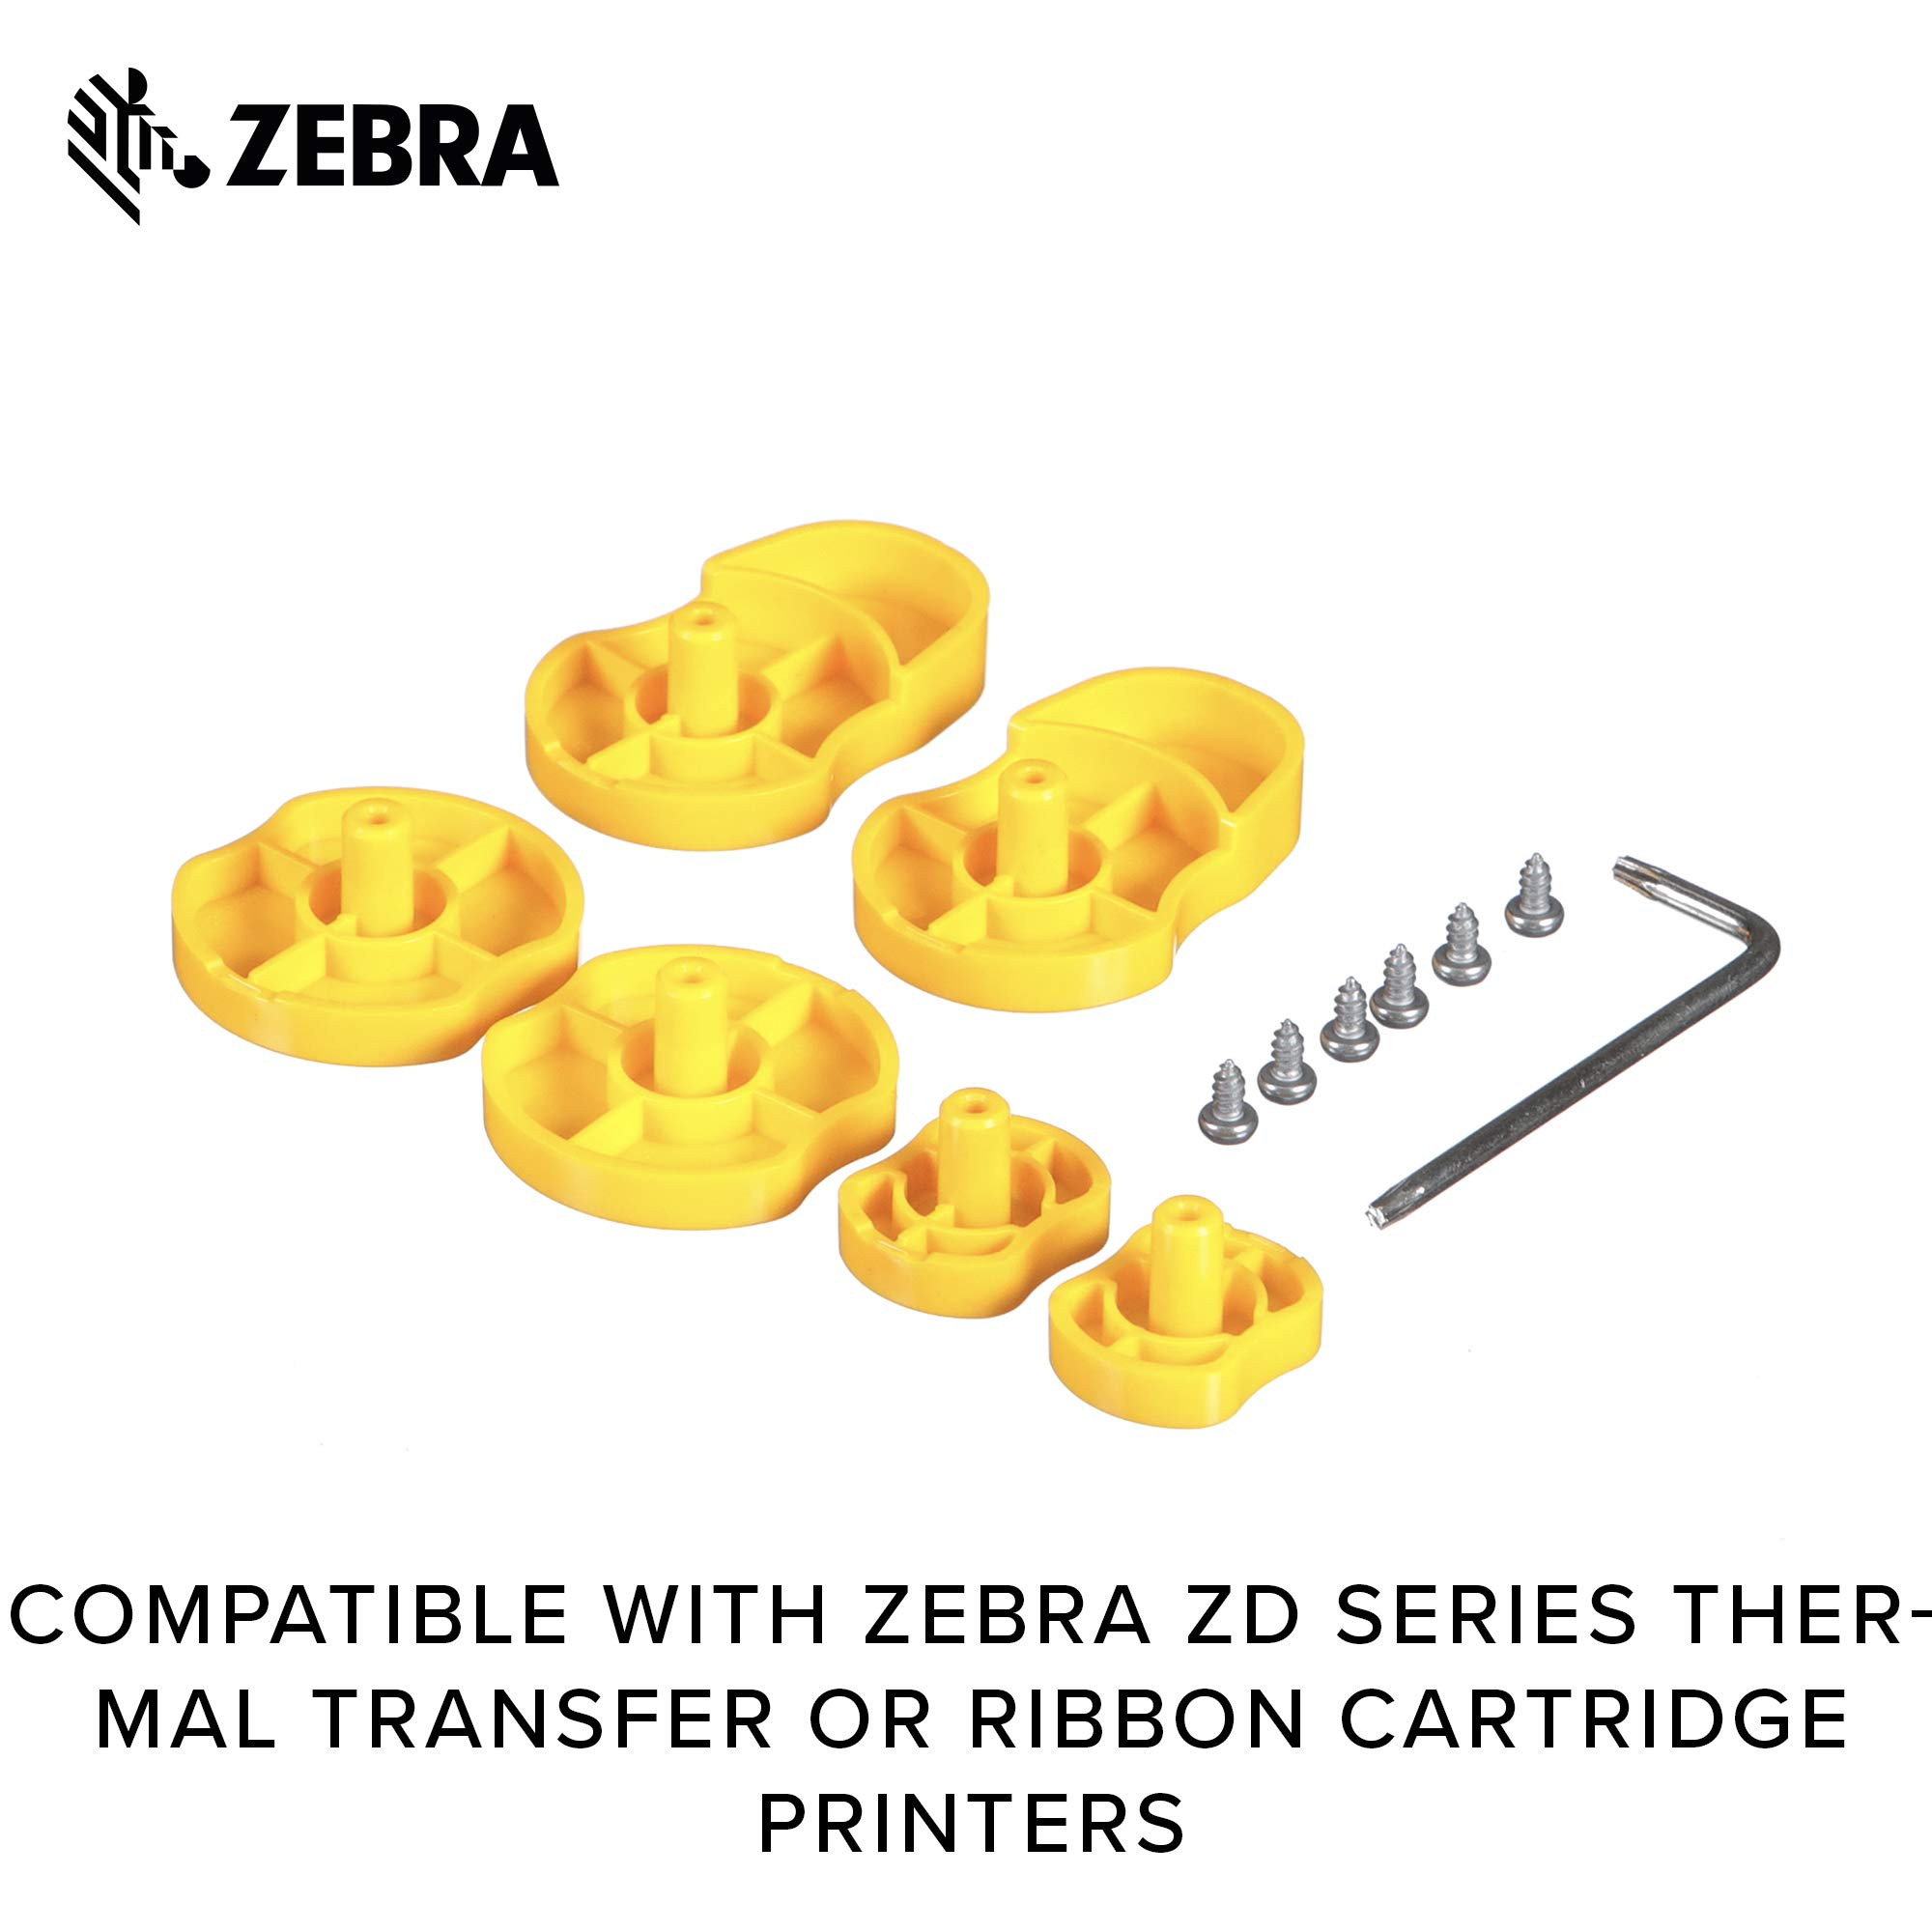 Zebra - Ethernet Module Adapter for ZD420 Direct Thermal Desktop Printer - Field Installable by Zebra Technologies (Image #7)